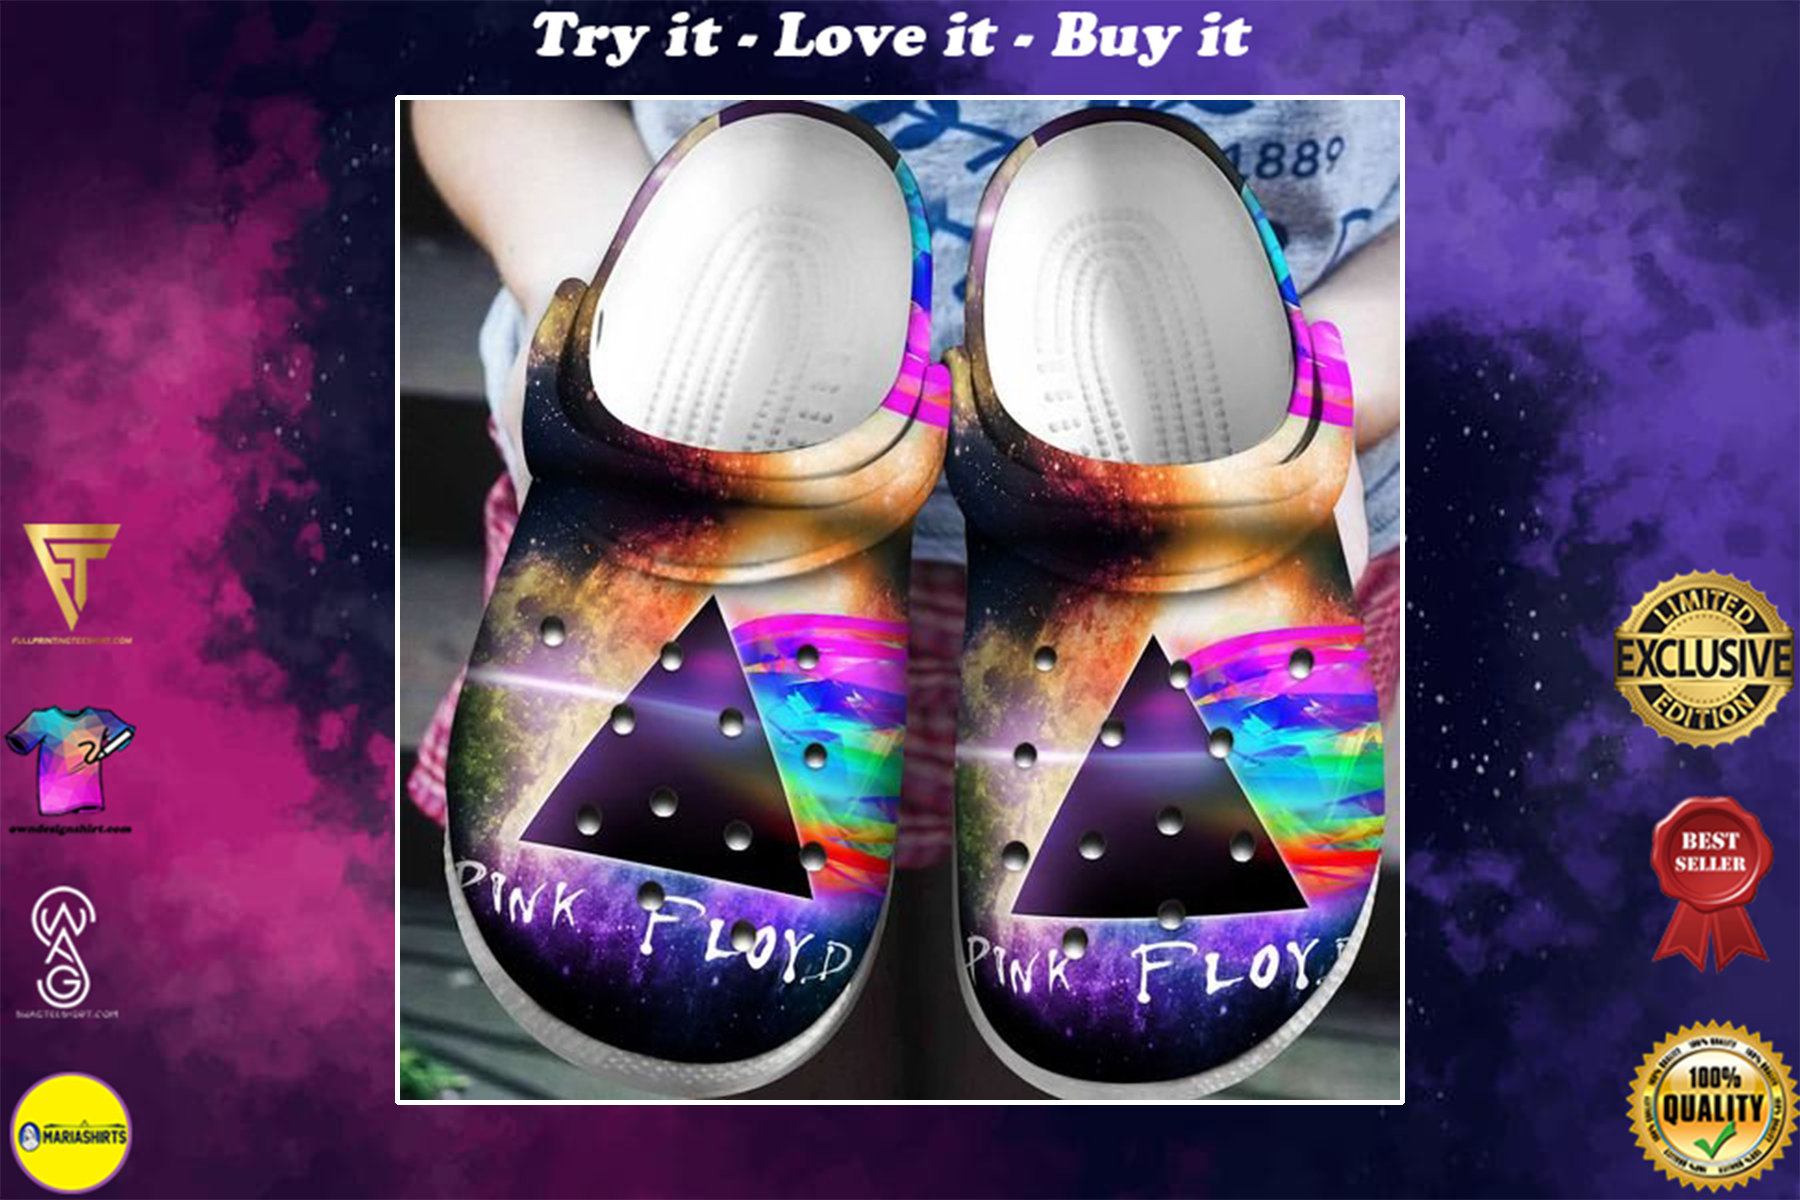 pink floyd the dark side of the moon crocband clog - Copy